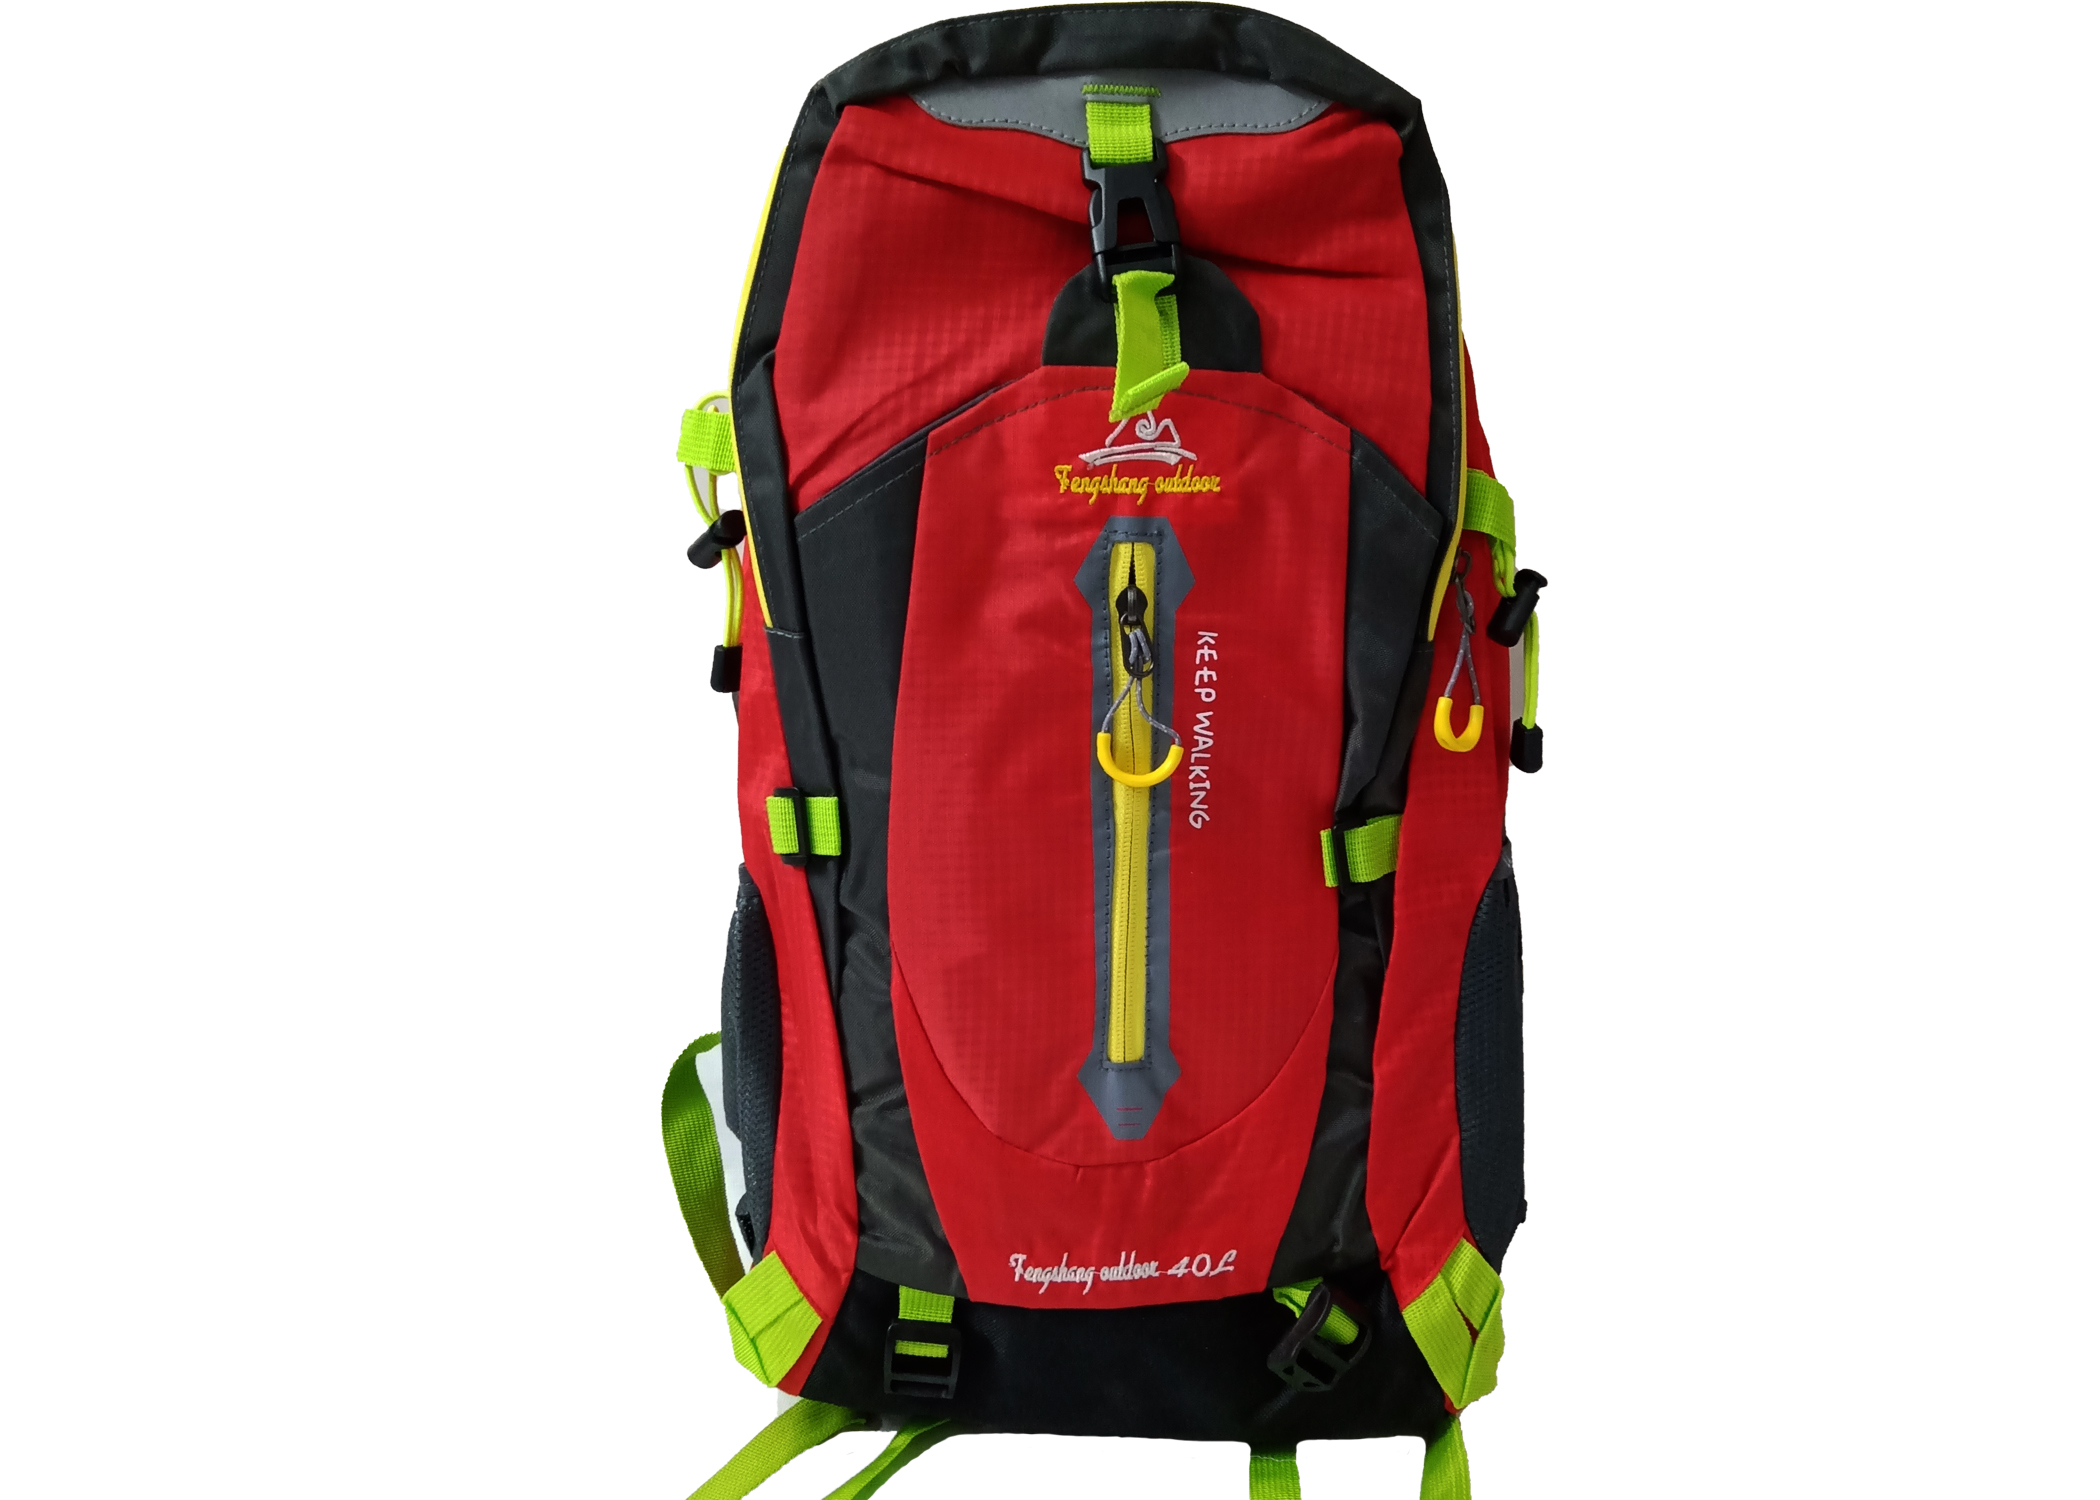 Large Size Hiking and Travelling Bag